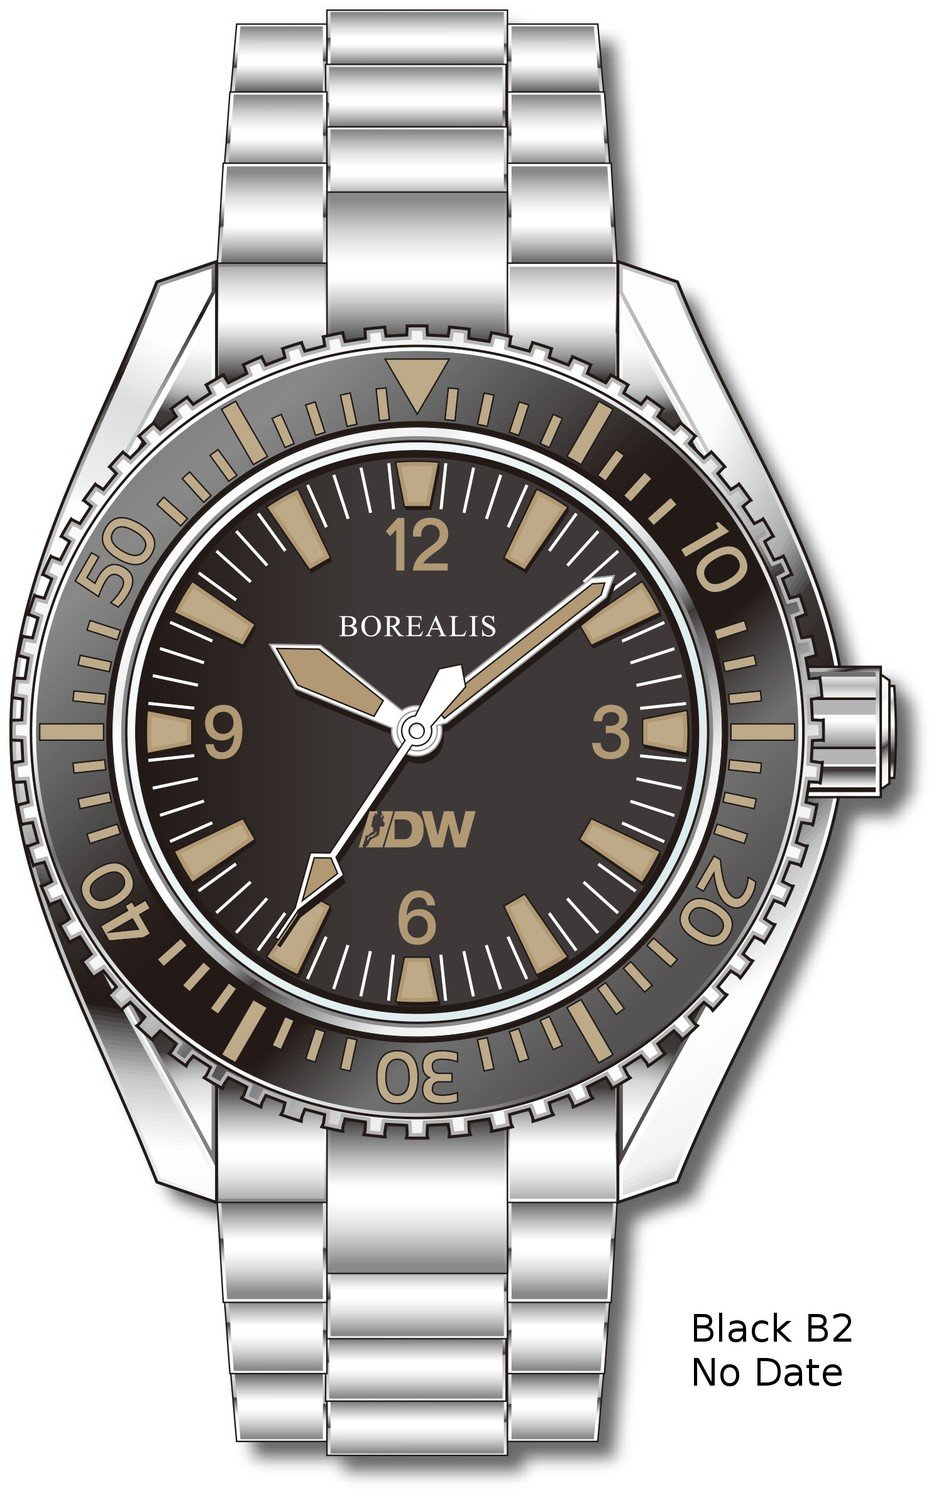 Pre-Order Borealis Estoril 300 for Diver's Watches Facebook Group Black Dial Arabic Numbers Date Black B2 No Date